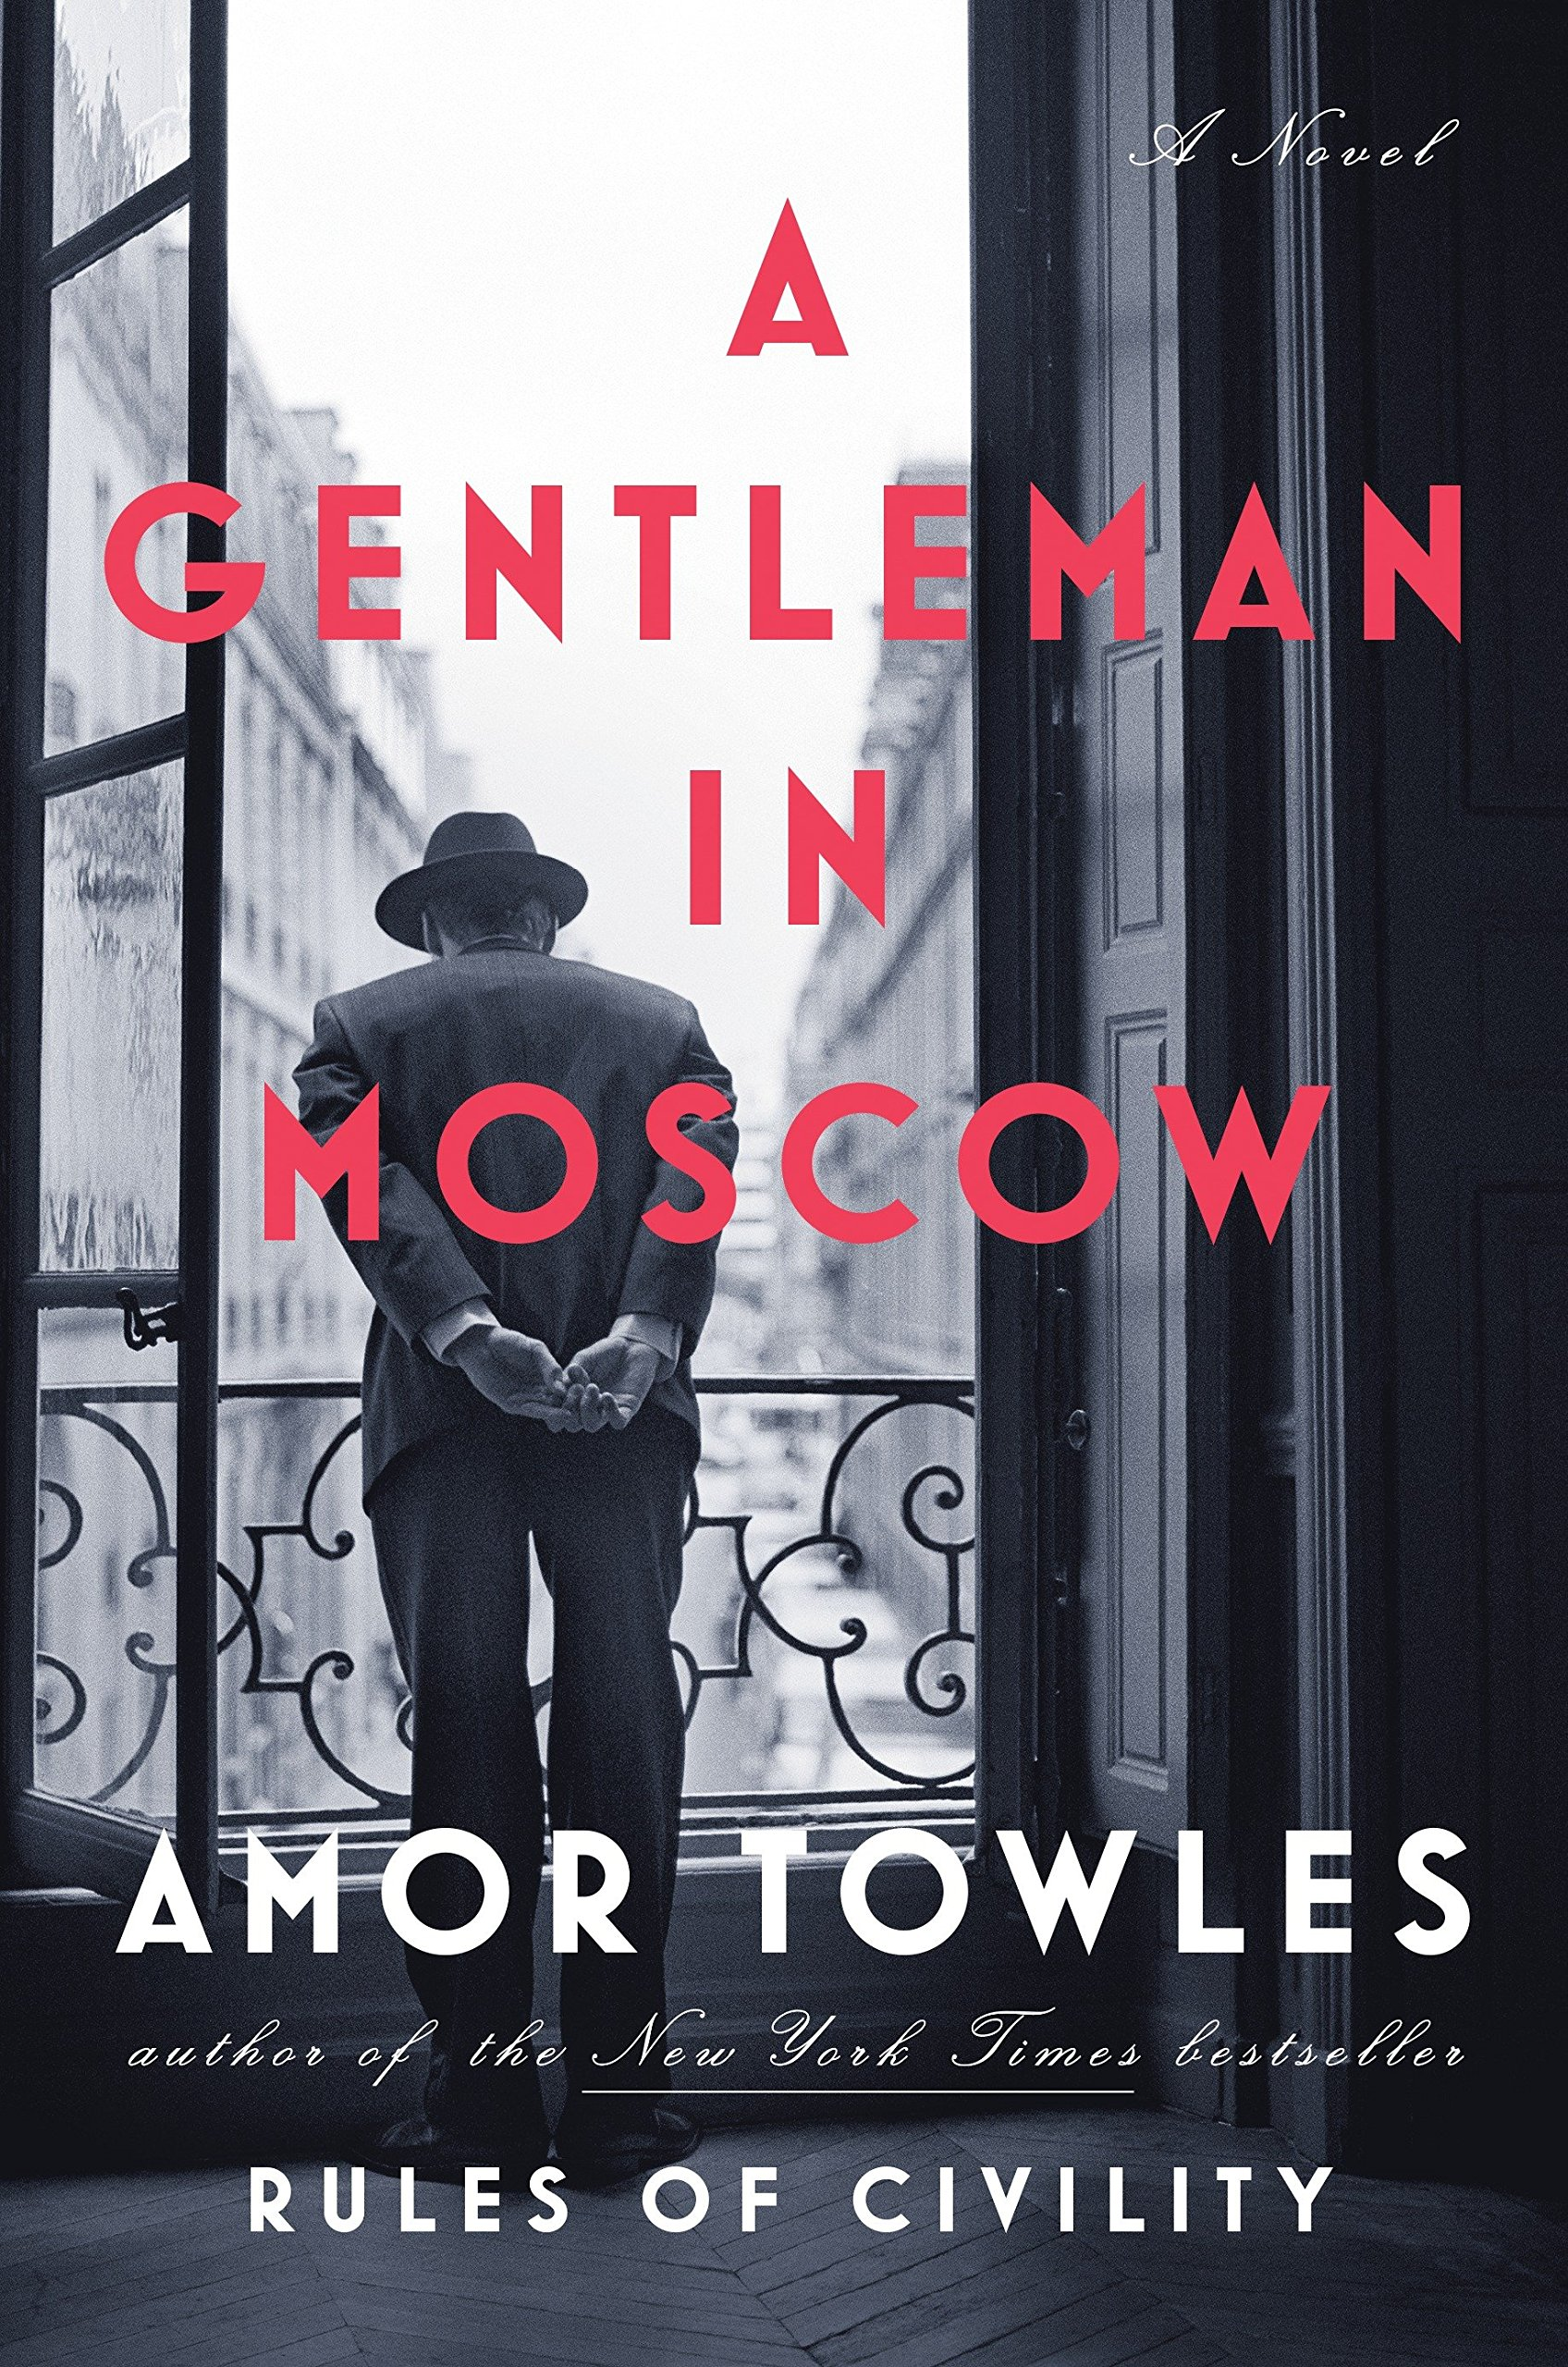 Image result for A Gentleman in Moscow by Amor Towles book cover